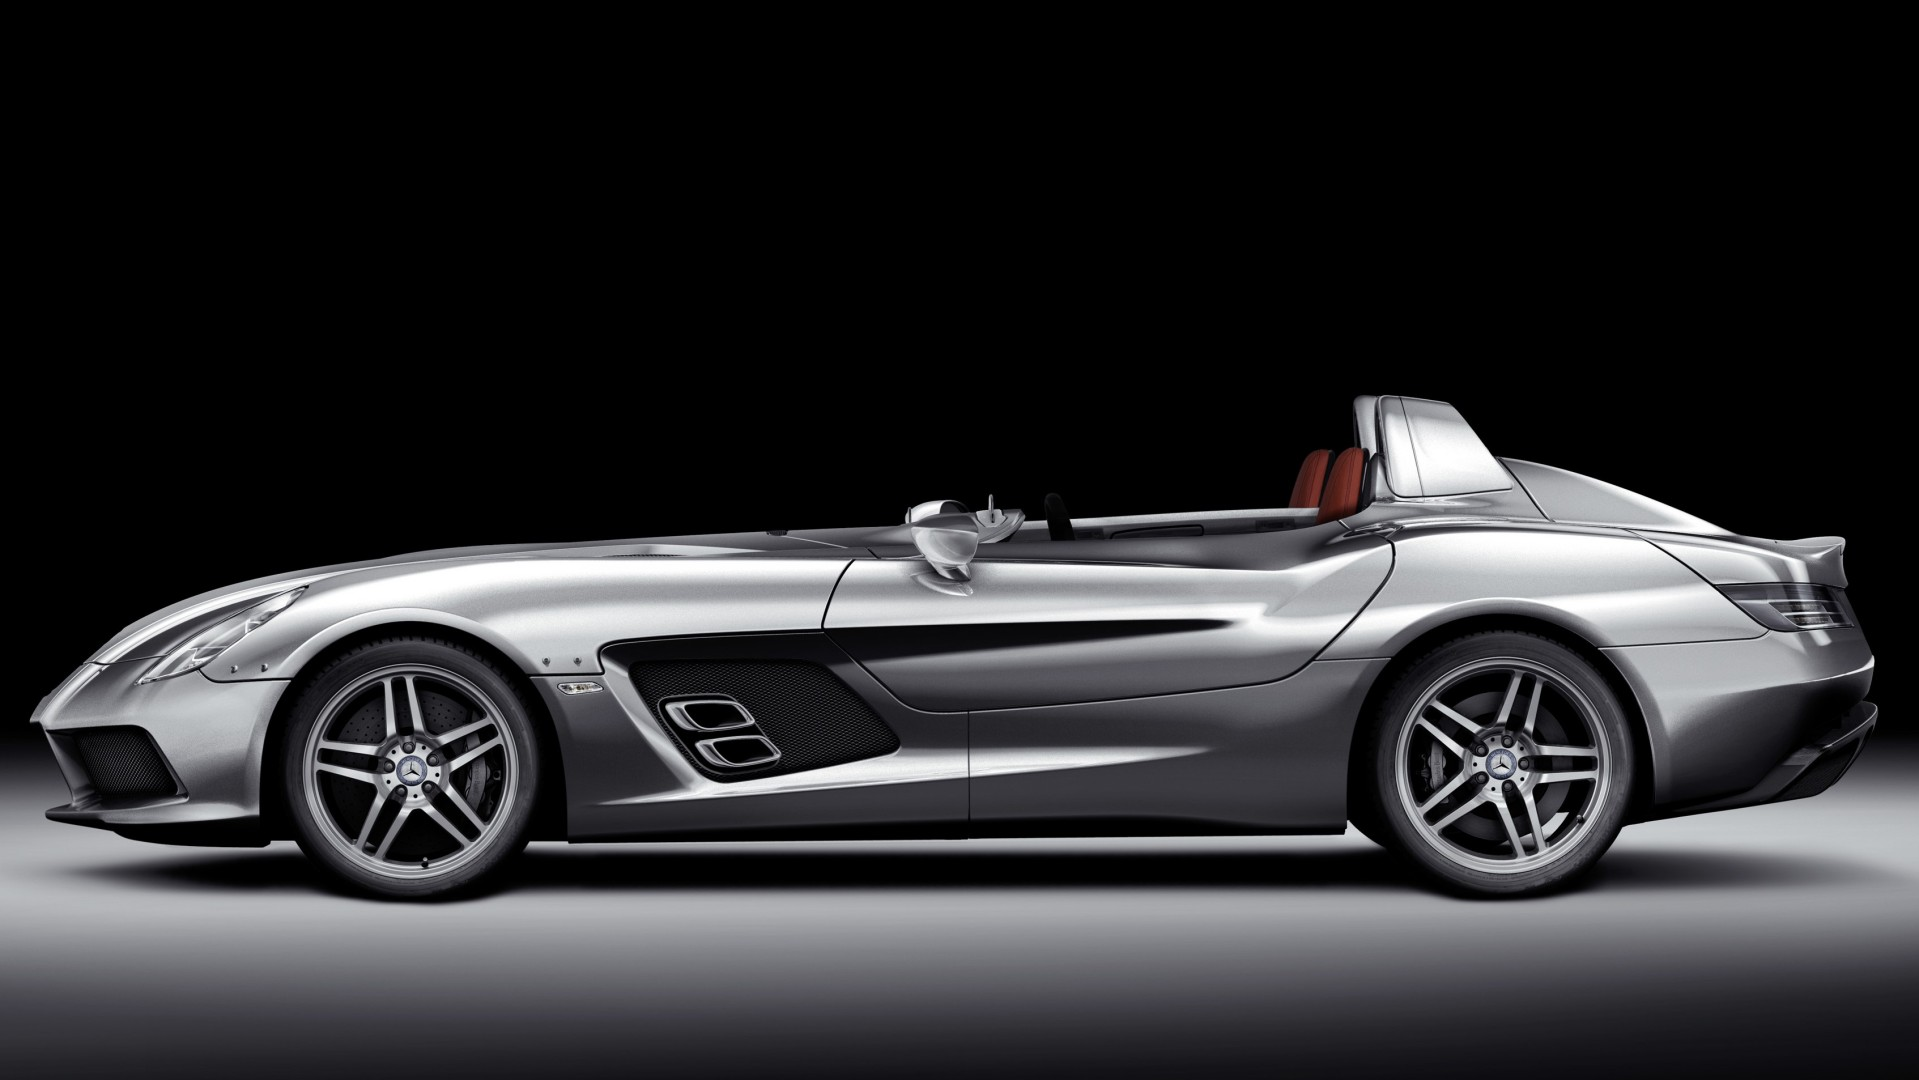 Mercedes Benz SLR McLaren Stirling Moss